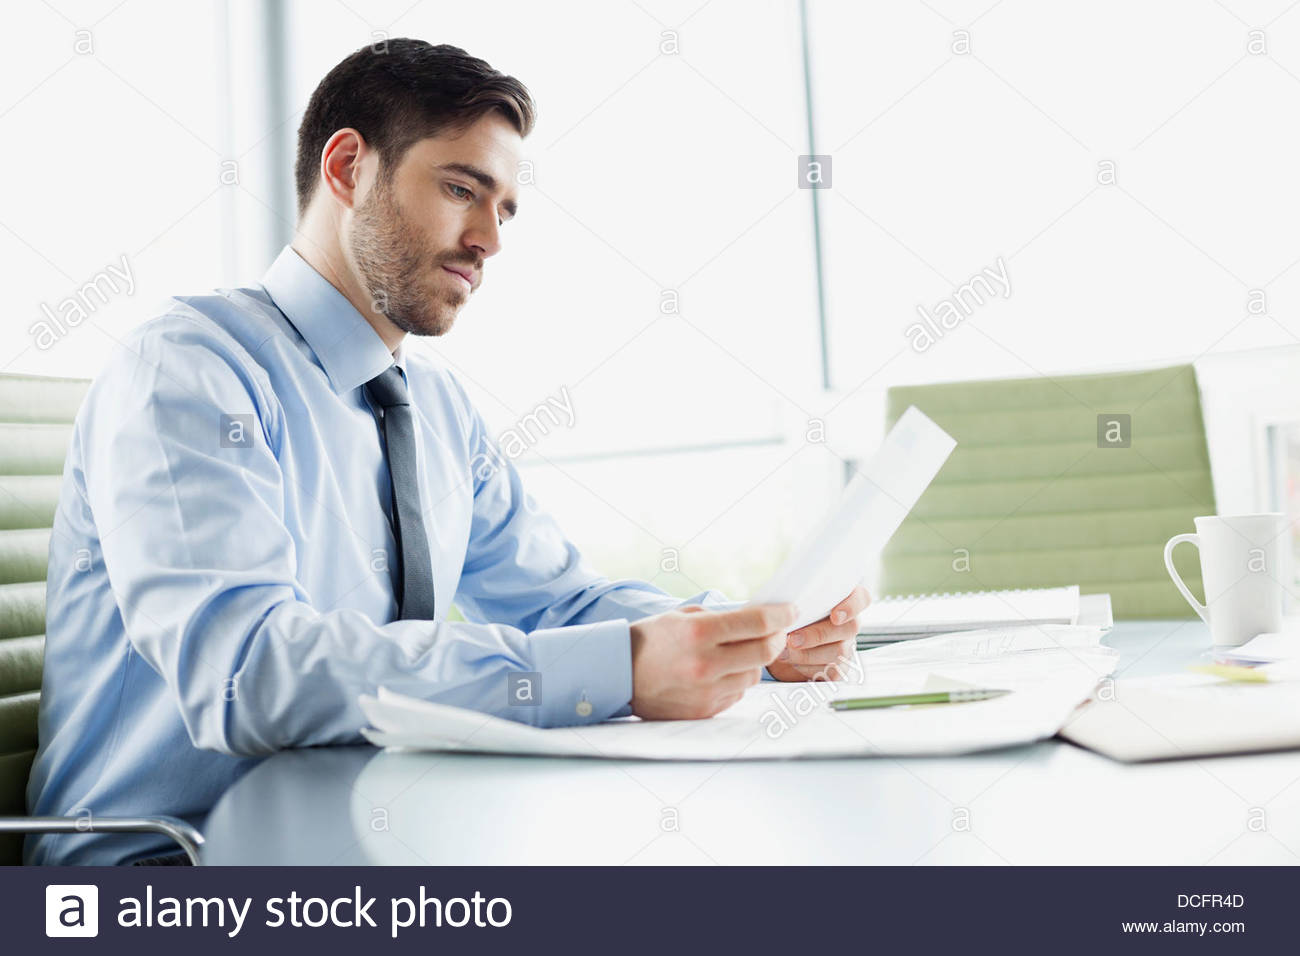 Businessman reviewing documents in board room - Stock Image